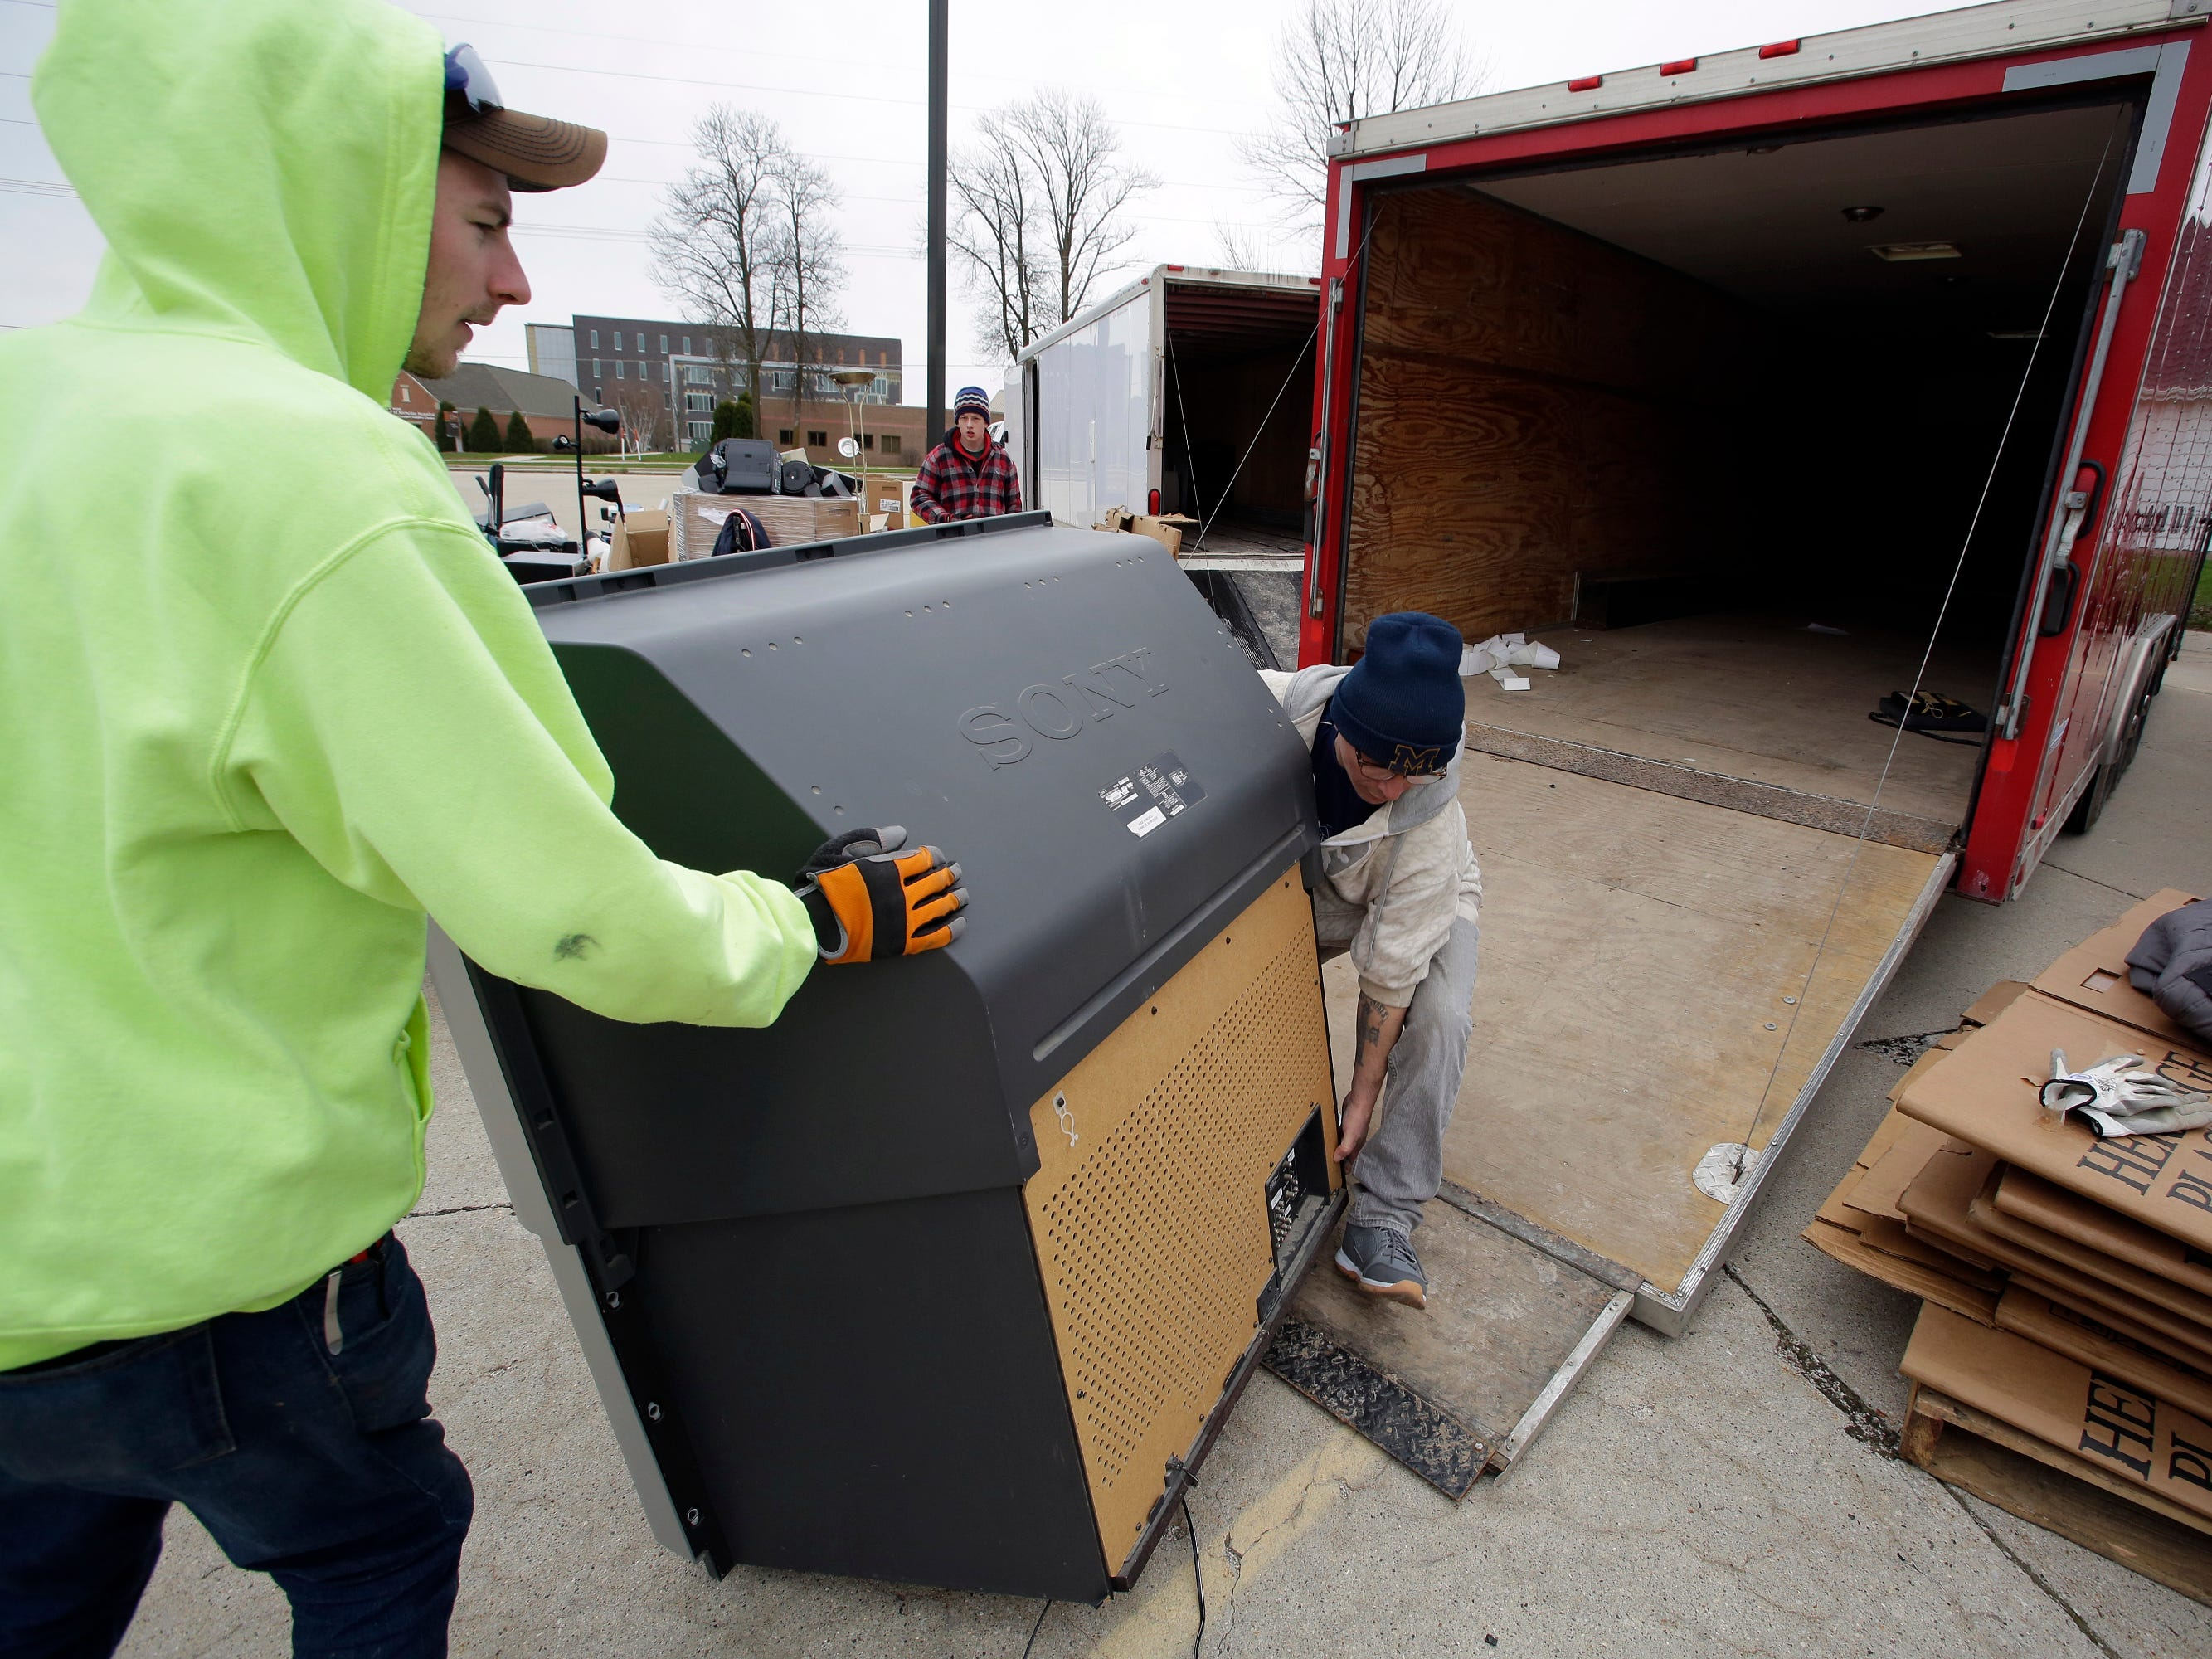 Tanner Gumm of Johnsonville, left, and Ron Howser of Sheboygan move a large screen television during a recycling event at Ebenezer United Church of Christ, Saturday, April 27, 2019, in Sheboygan, Wis.